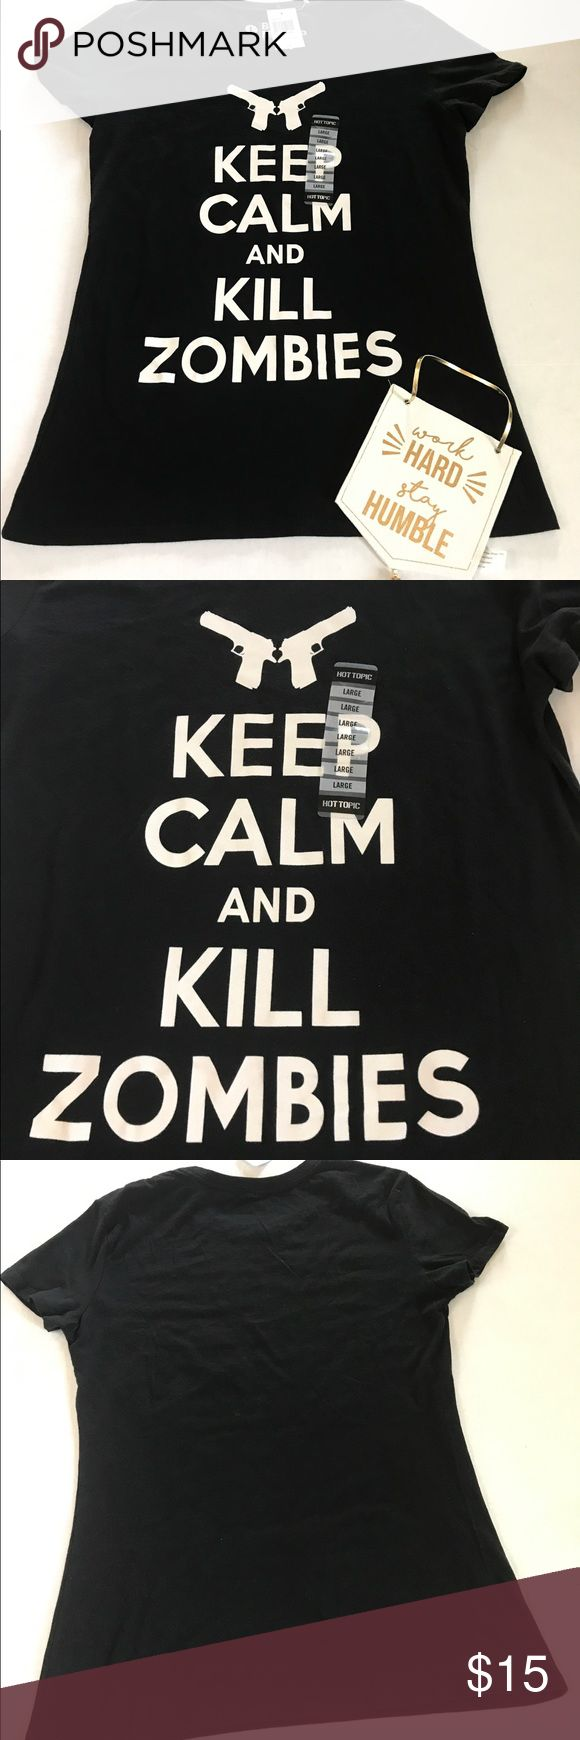 Kill zombies t shirt New keep calm and kill zombies retail tag has been clipped to prevent store return Hot Topic Tops Tees - Short Sleeve